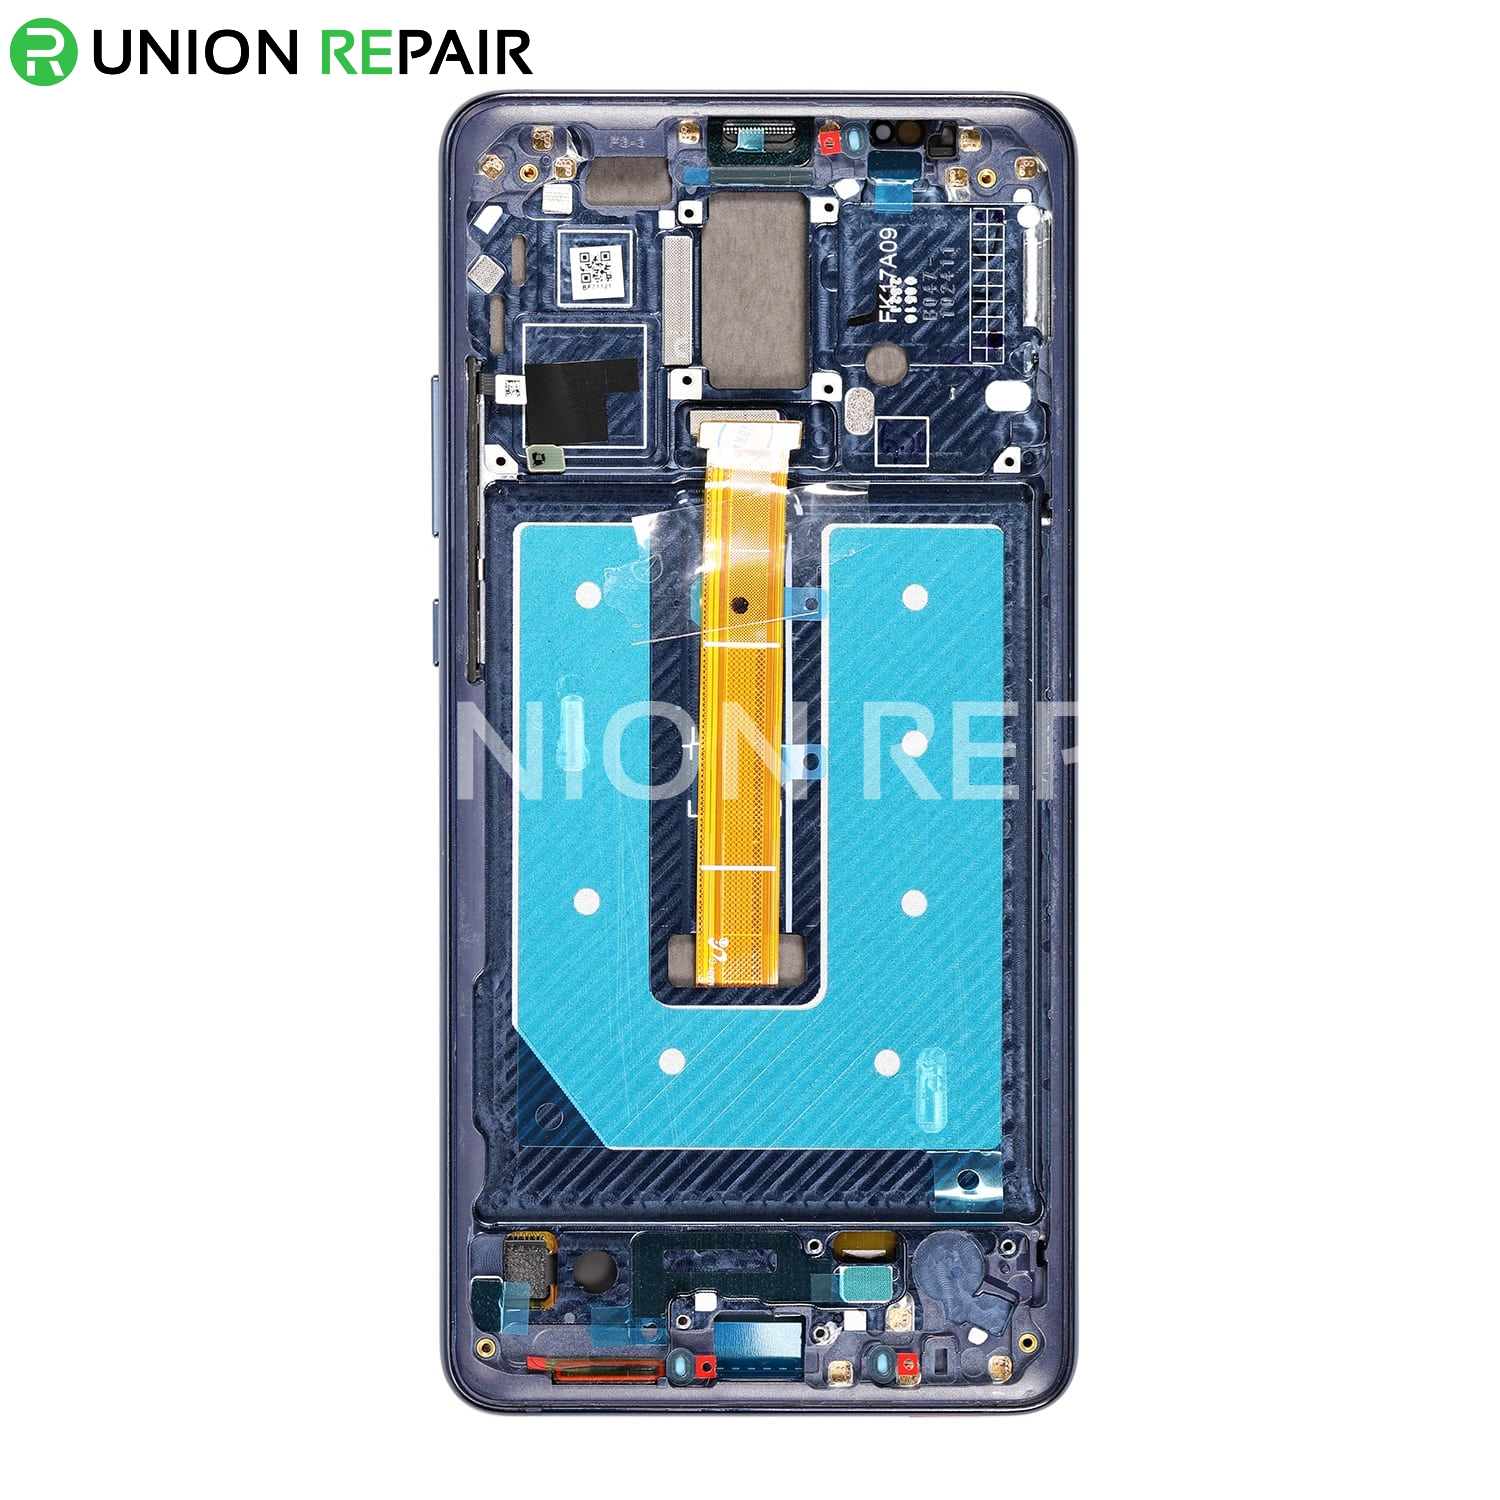 Replacement for Huawei Mate 10 Pro LCD Screen Digitizer Assembly with Frame - Midnight Blue